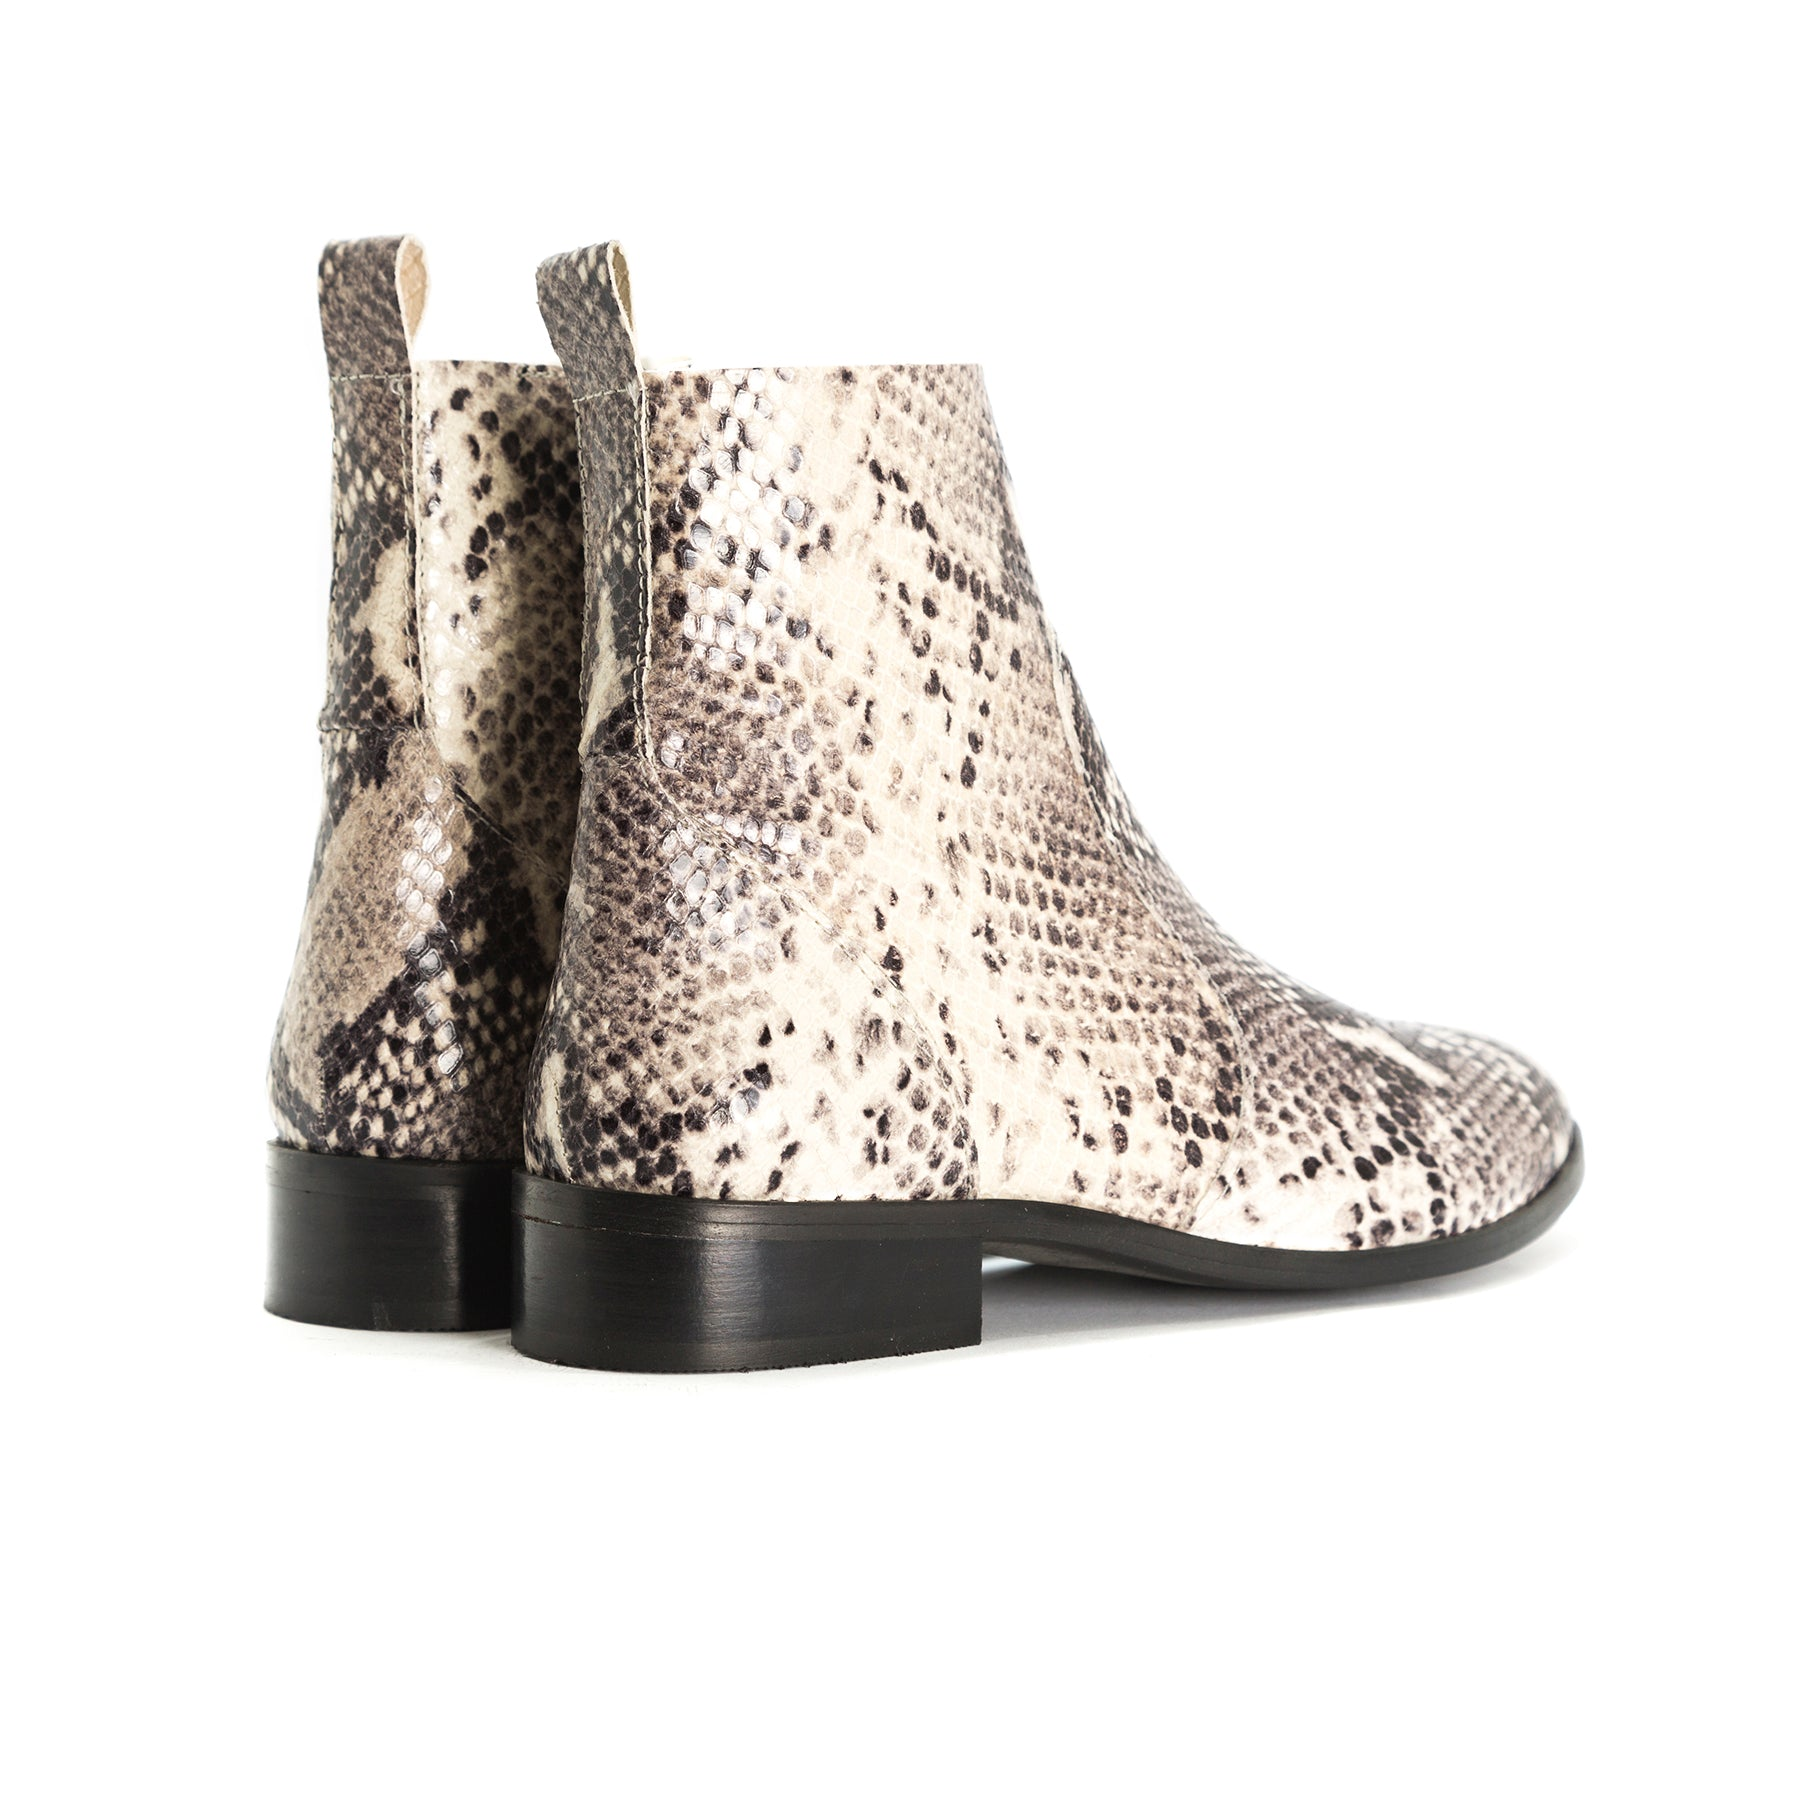 Mercer Nude Snake Booties